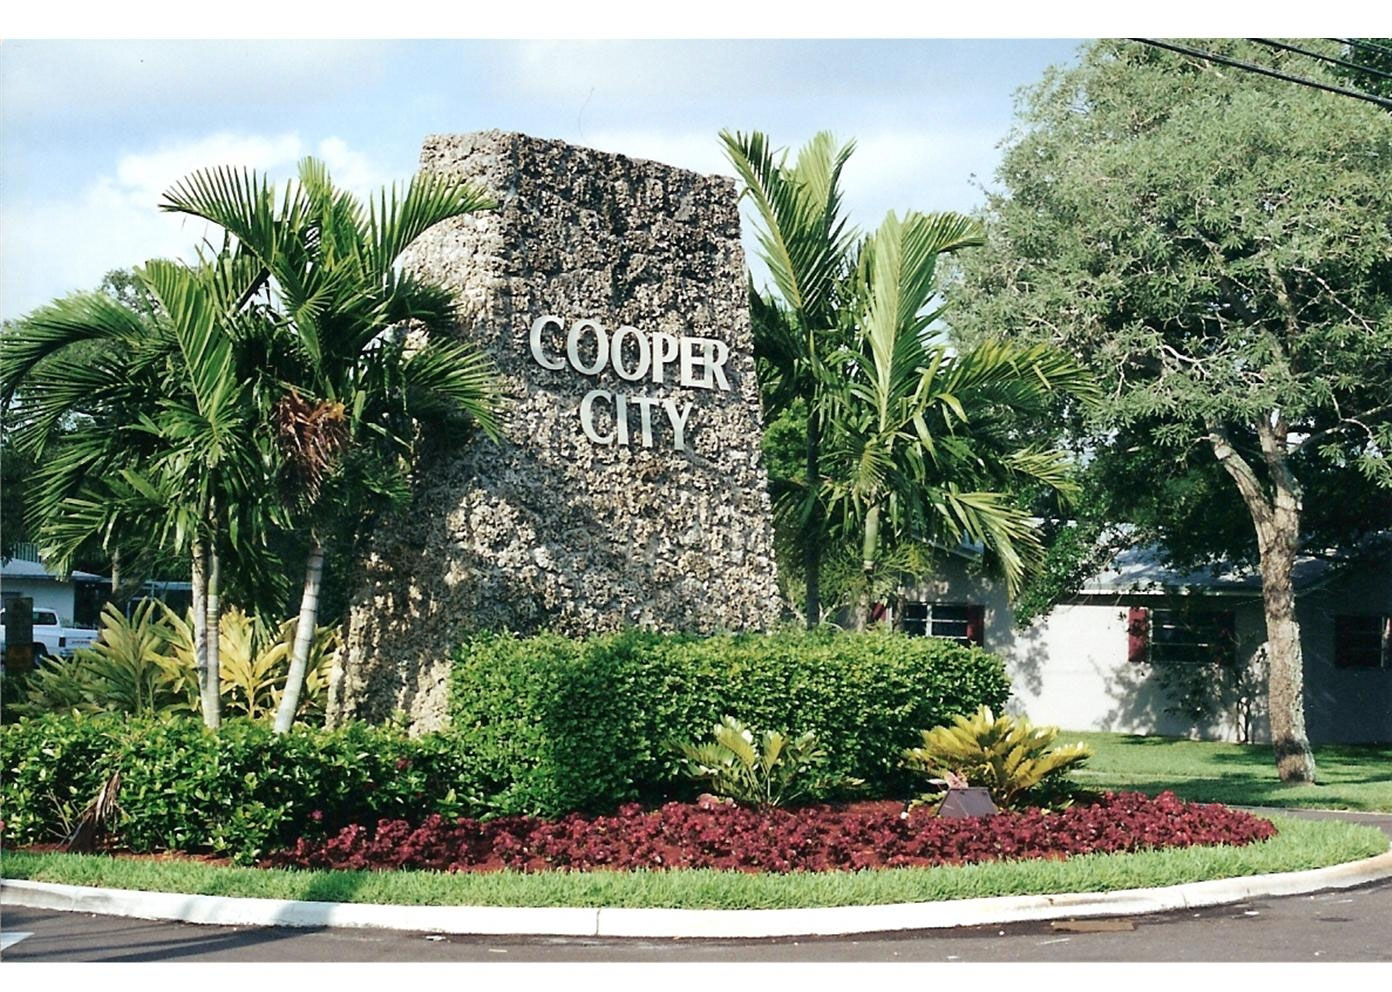 Cooper city moving